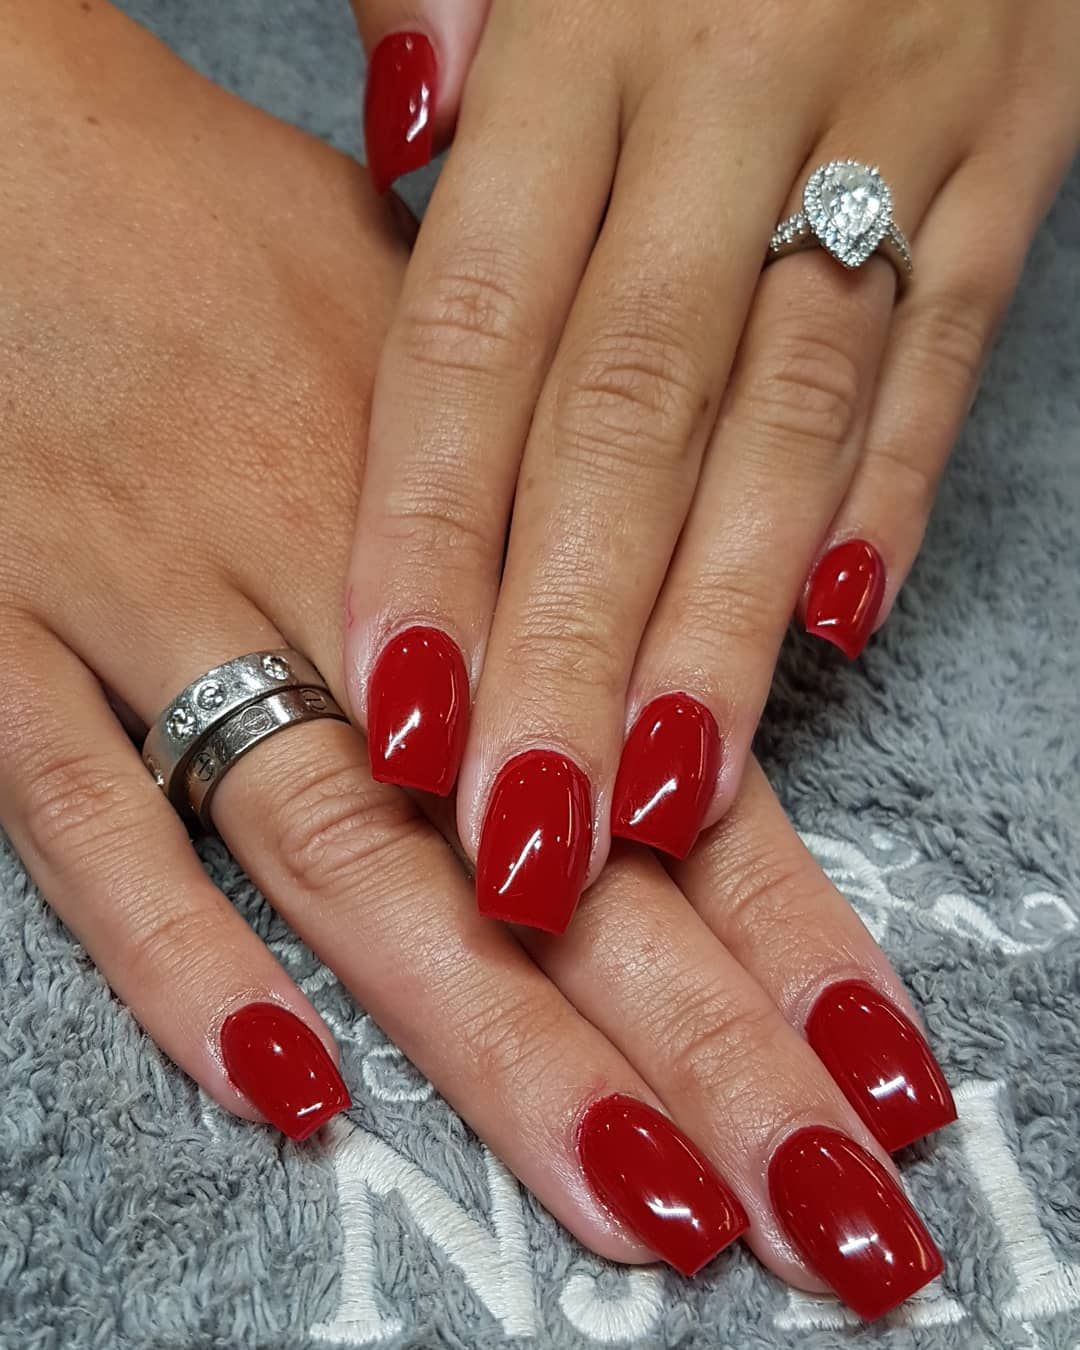 Opi gel the thrill of brazil opi red nail polish red